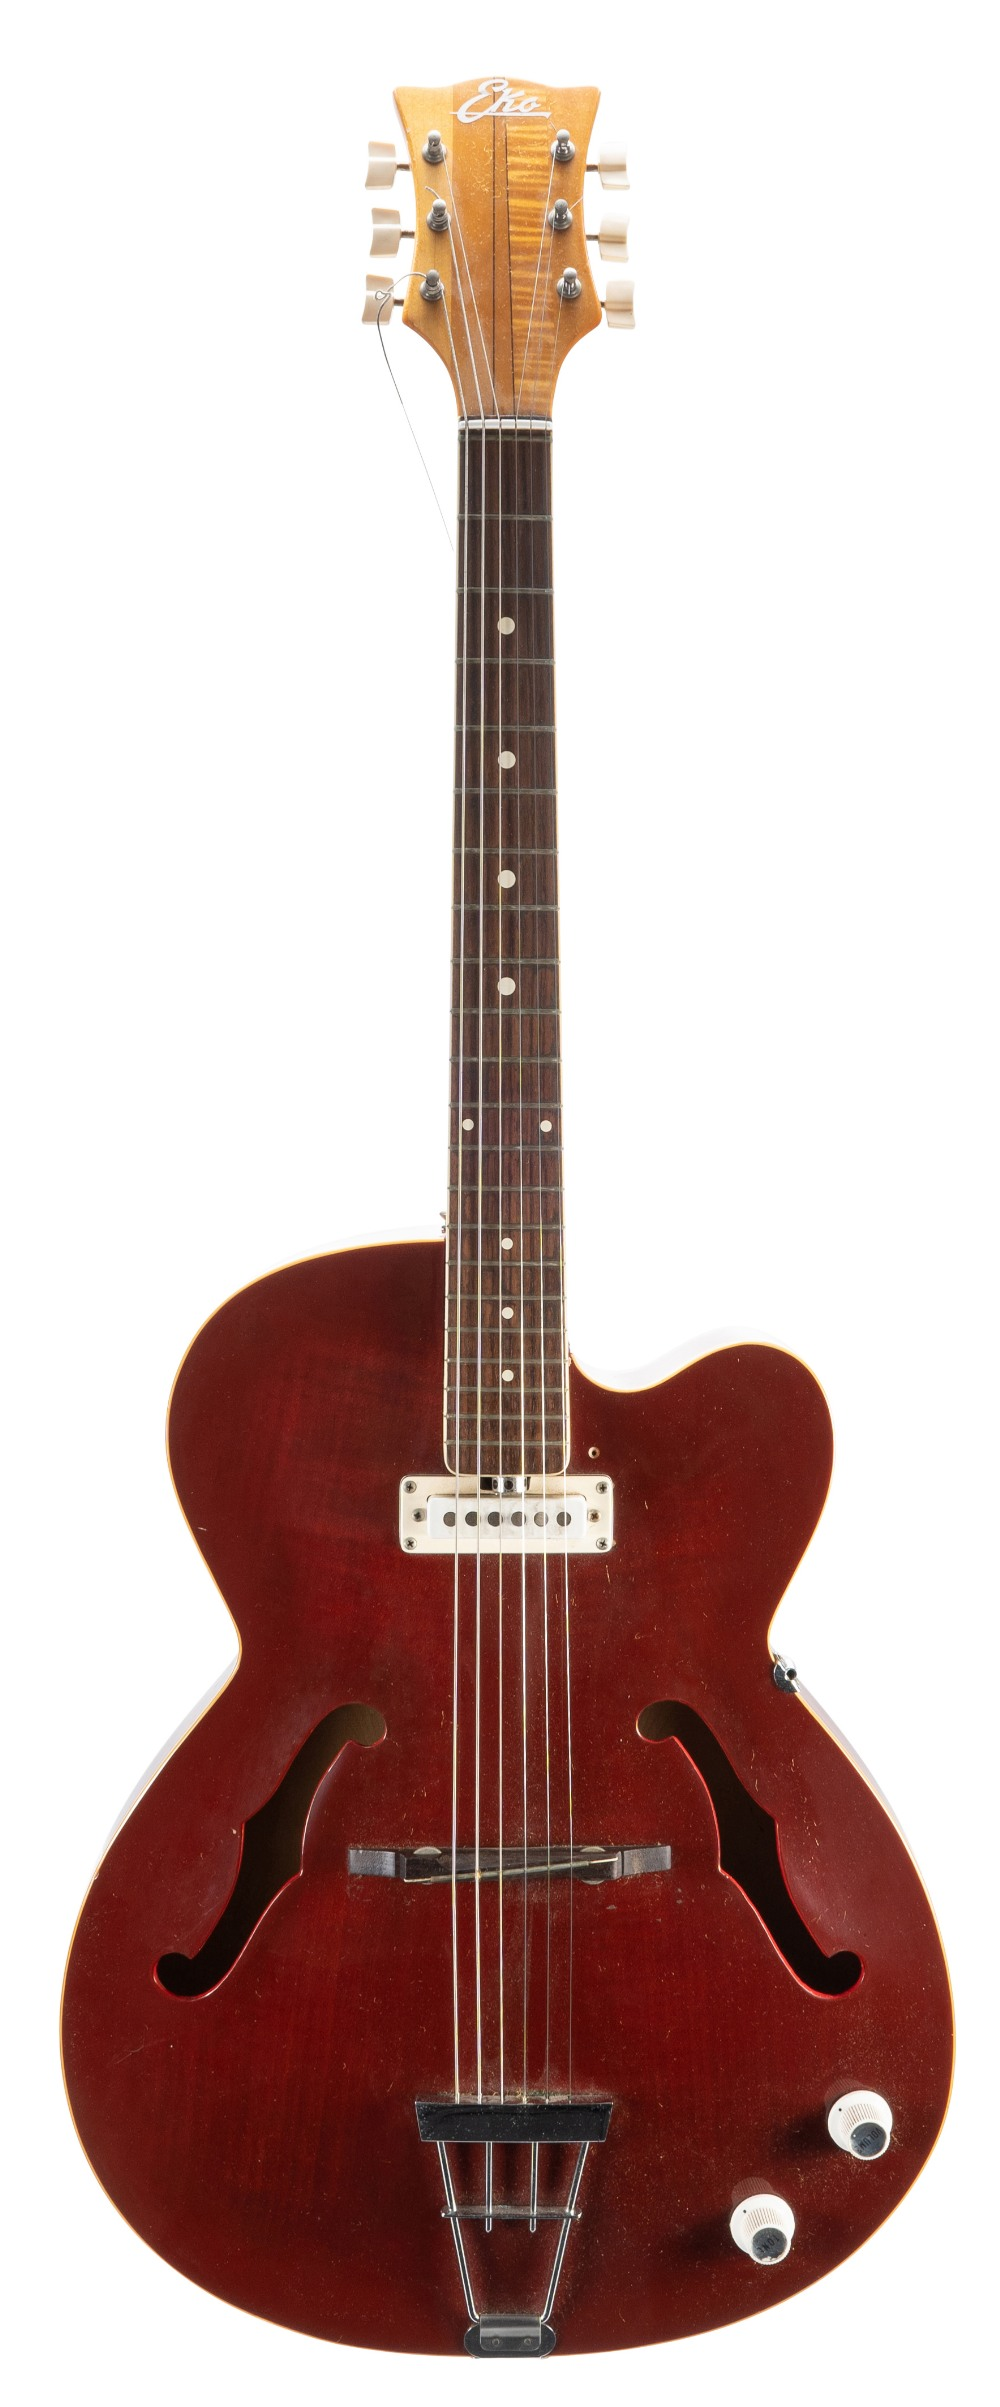 Lot 26 - 1960s Eko hollow body electric guitar, made in Italy, ser. no. 4xxxx2; Finish: cherry red, surface